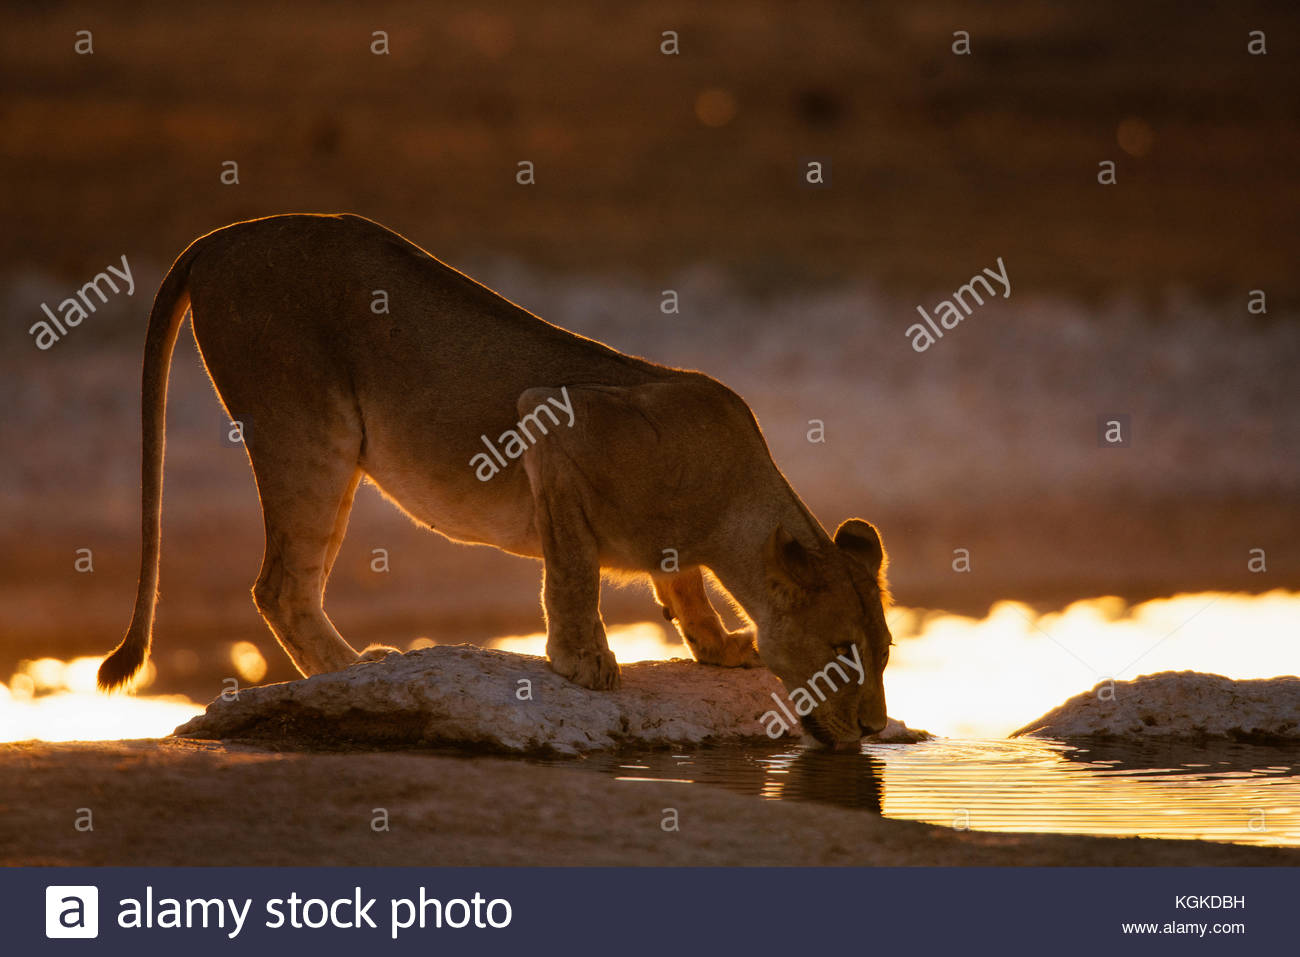 A lioness, Panthera leo, drinking at a waterhole at sunrise. Stock Photo